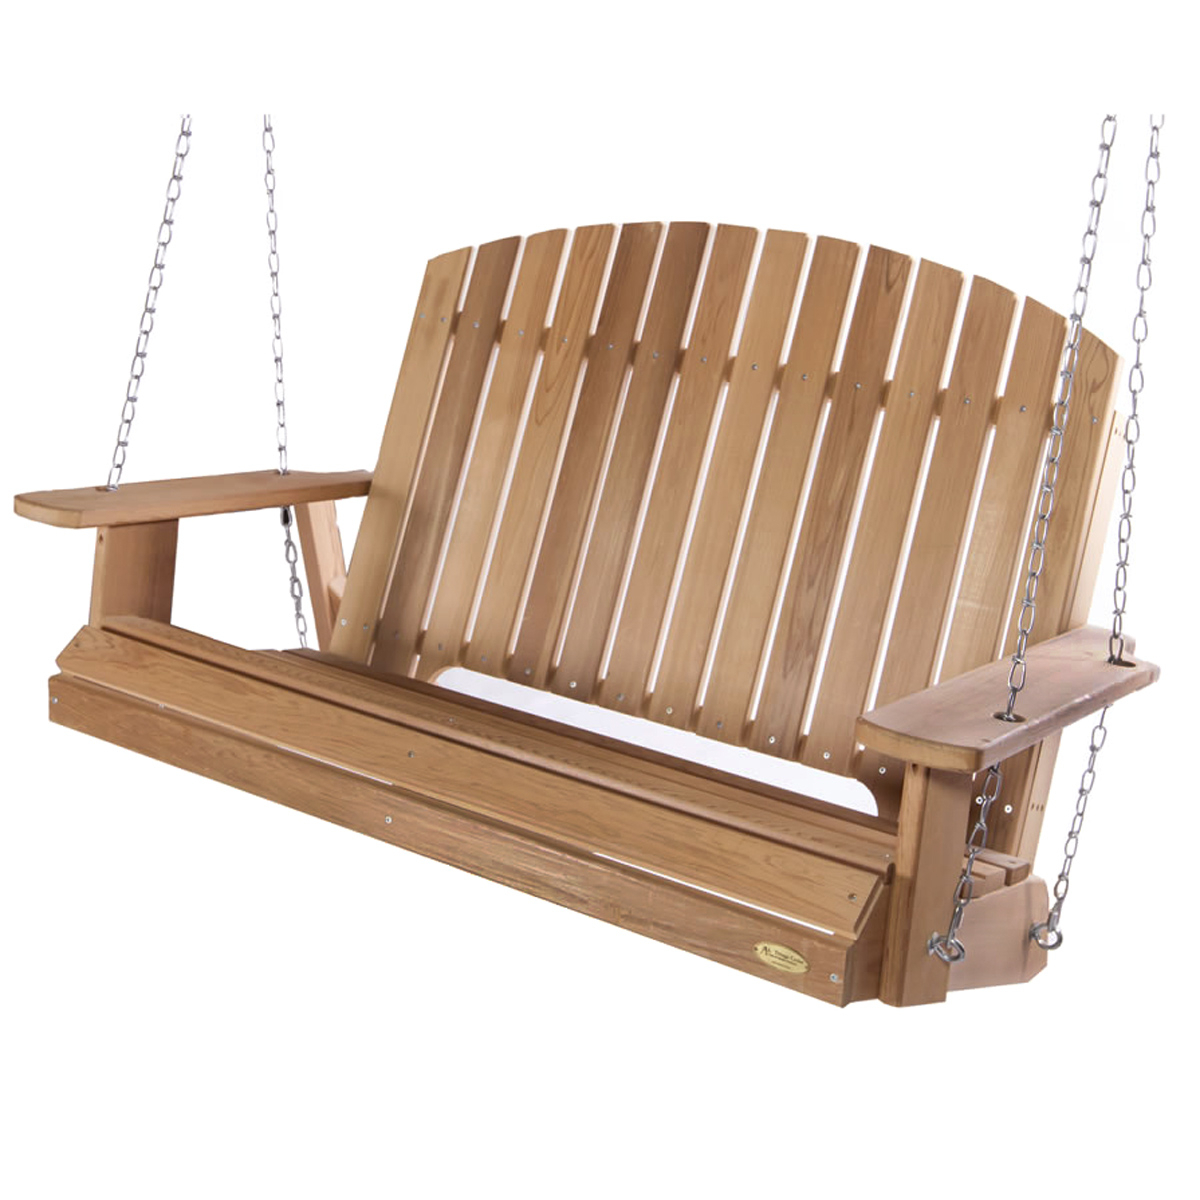 Summer Cedar: Western Red Cedar, Cedar Benches And Swings Inside Preferred 5 Ft Cedar Swings With Springs (View 24 of 30)